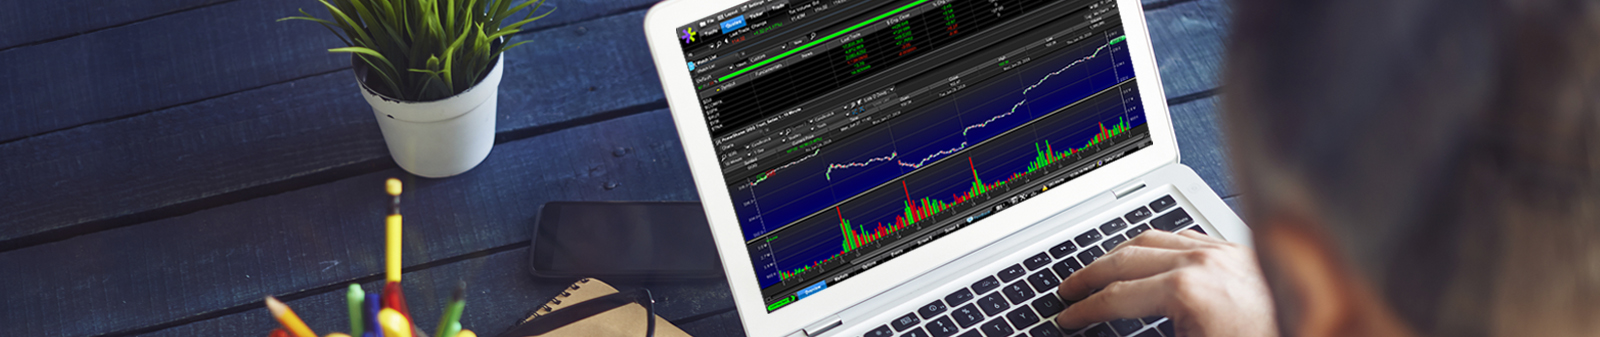 How to get level 2 options trading on etrade